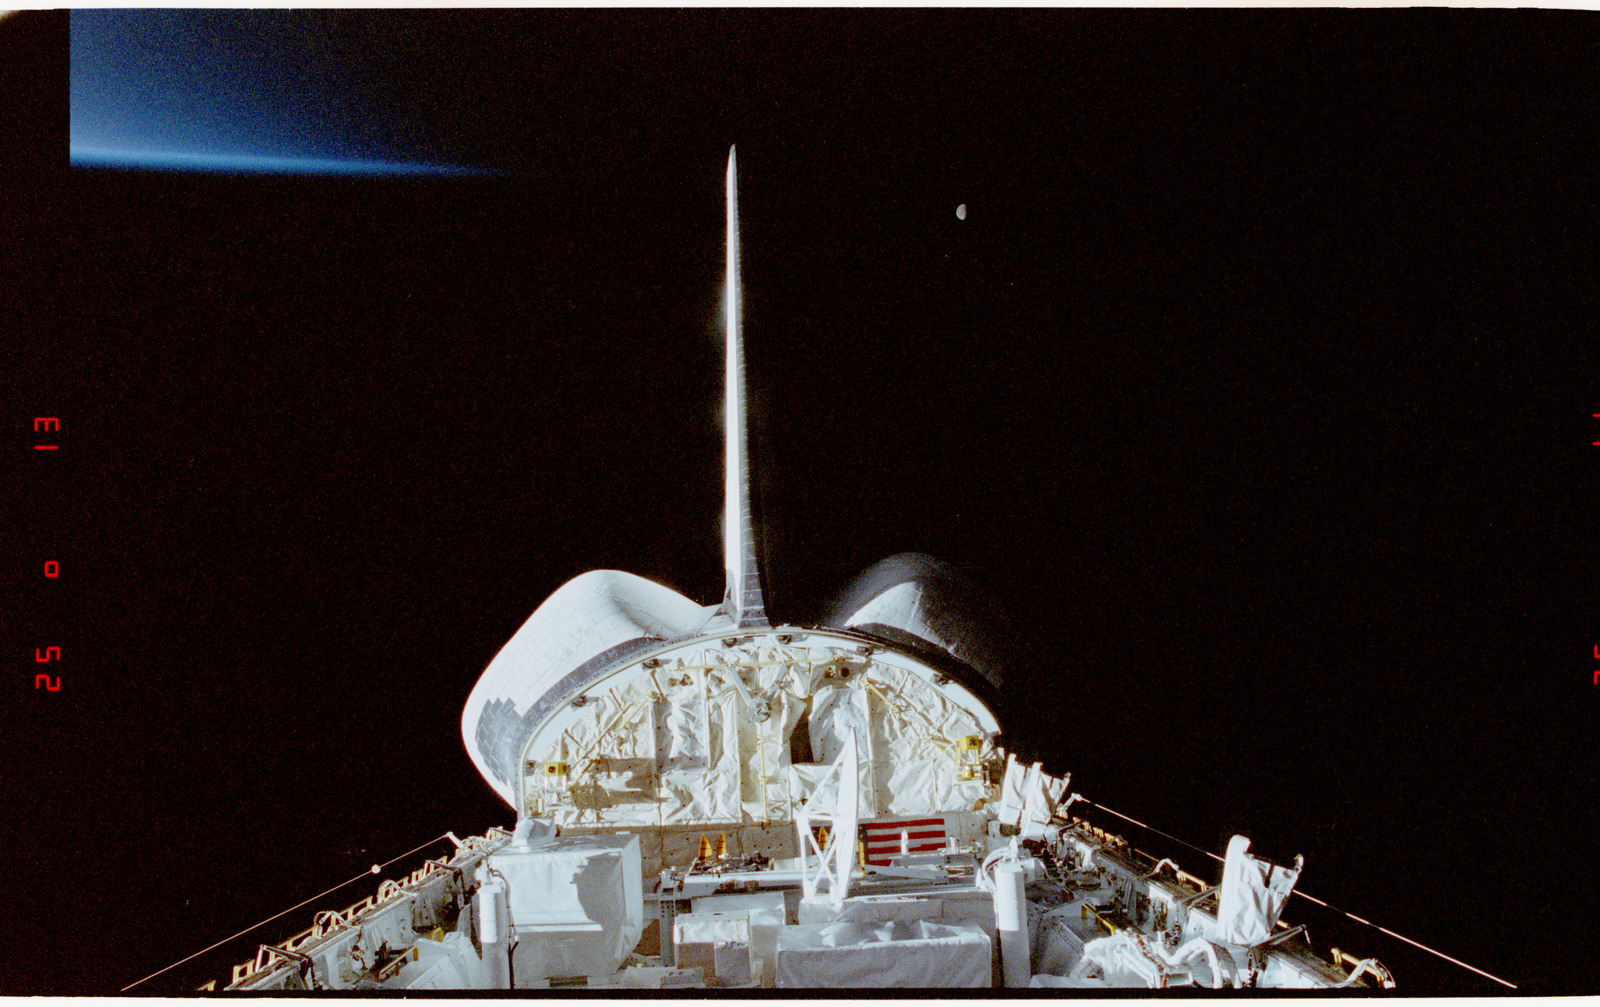 STS056-28-018 - STS-056 - Views of the payload bay, Earth limb with day/night terminator, and moon.